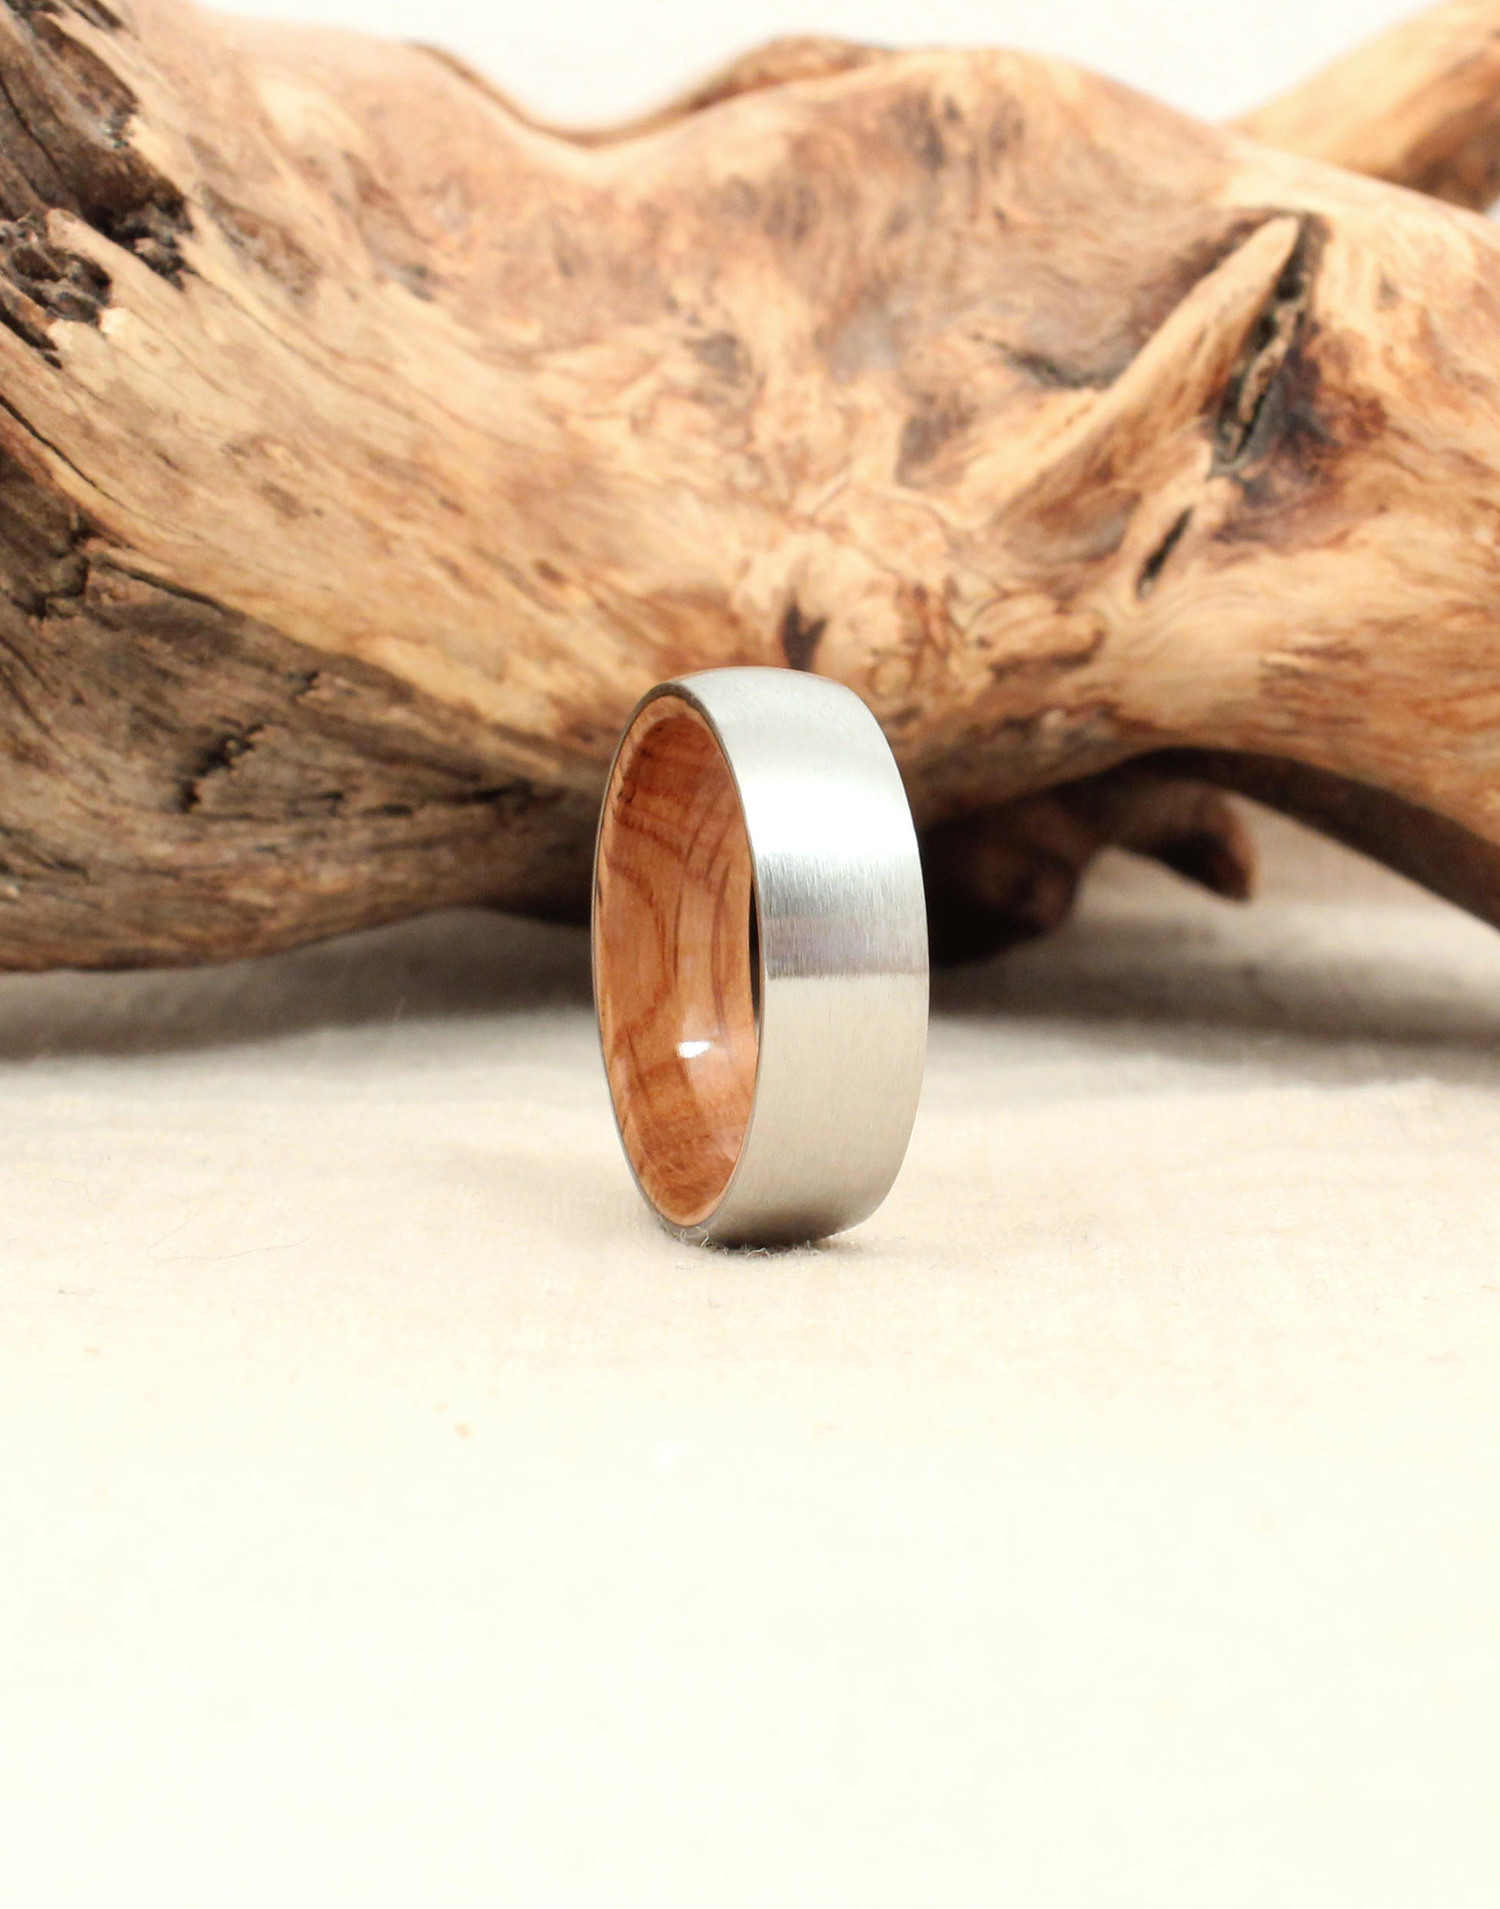 Cobalt Wood Ring Lined with Jack Daniels Whiskey White Oak Barrel